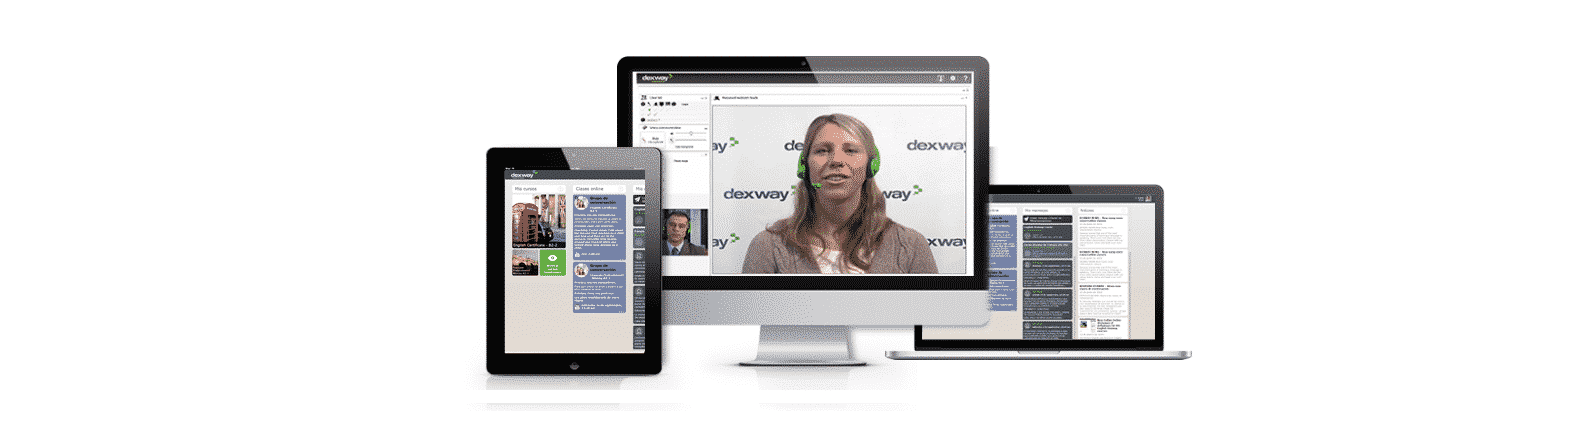 LMS LCMS and Virtual classroom